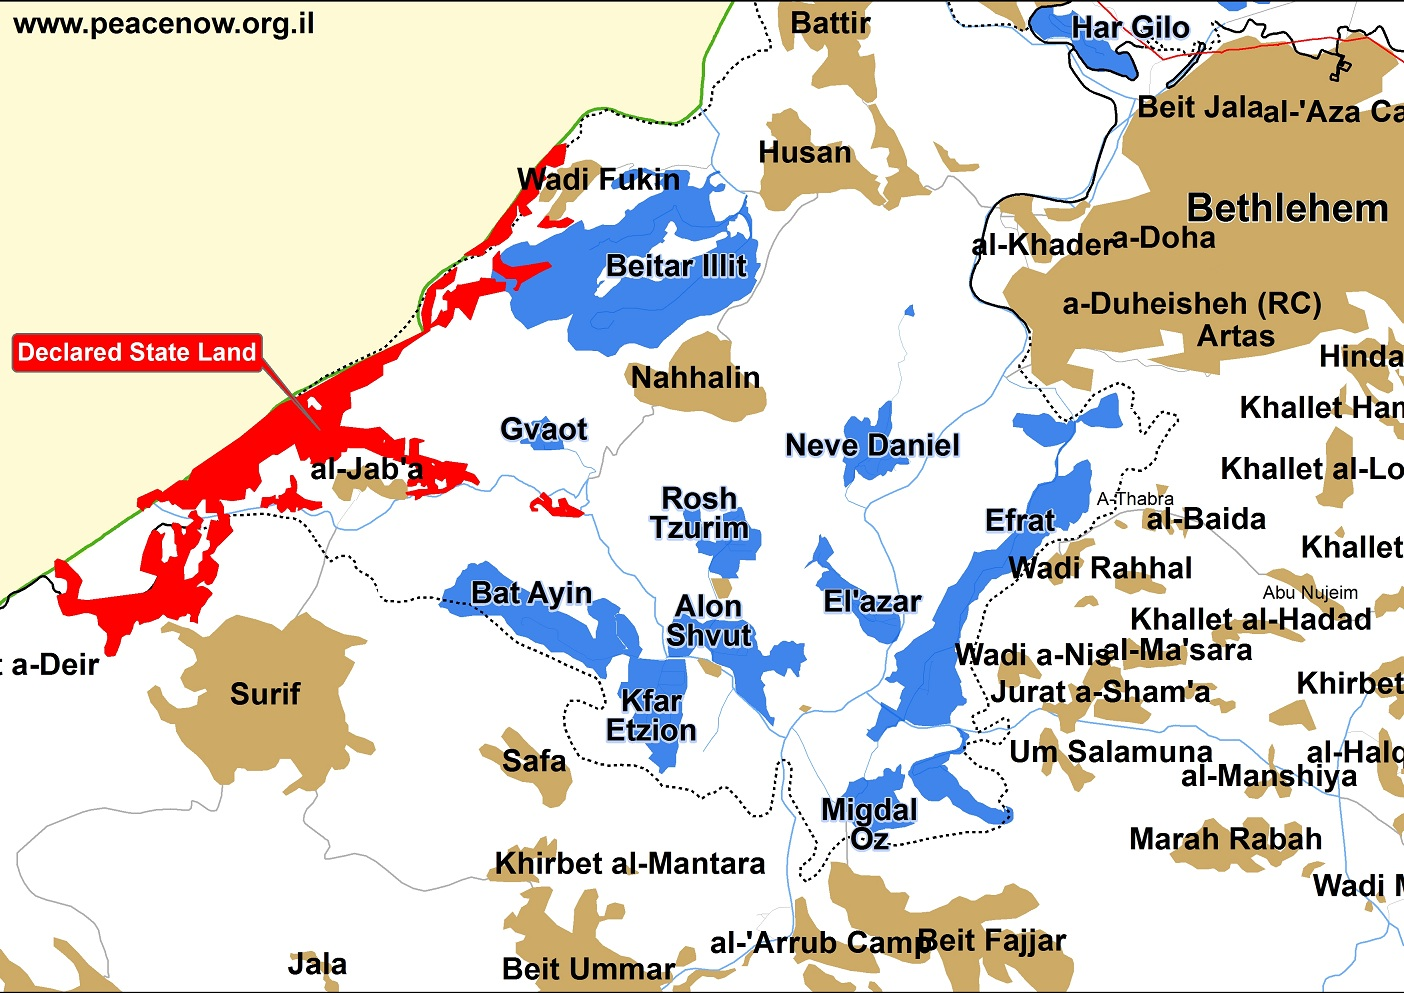 Map of West Bank area West of Bethlemen showing Israeli settlements (blue), Palestinian villages and towns (brown) and the area declared as State Land (red). (Peace Now)